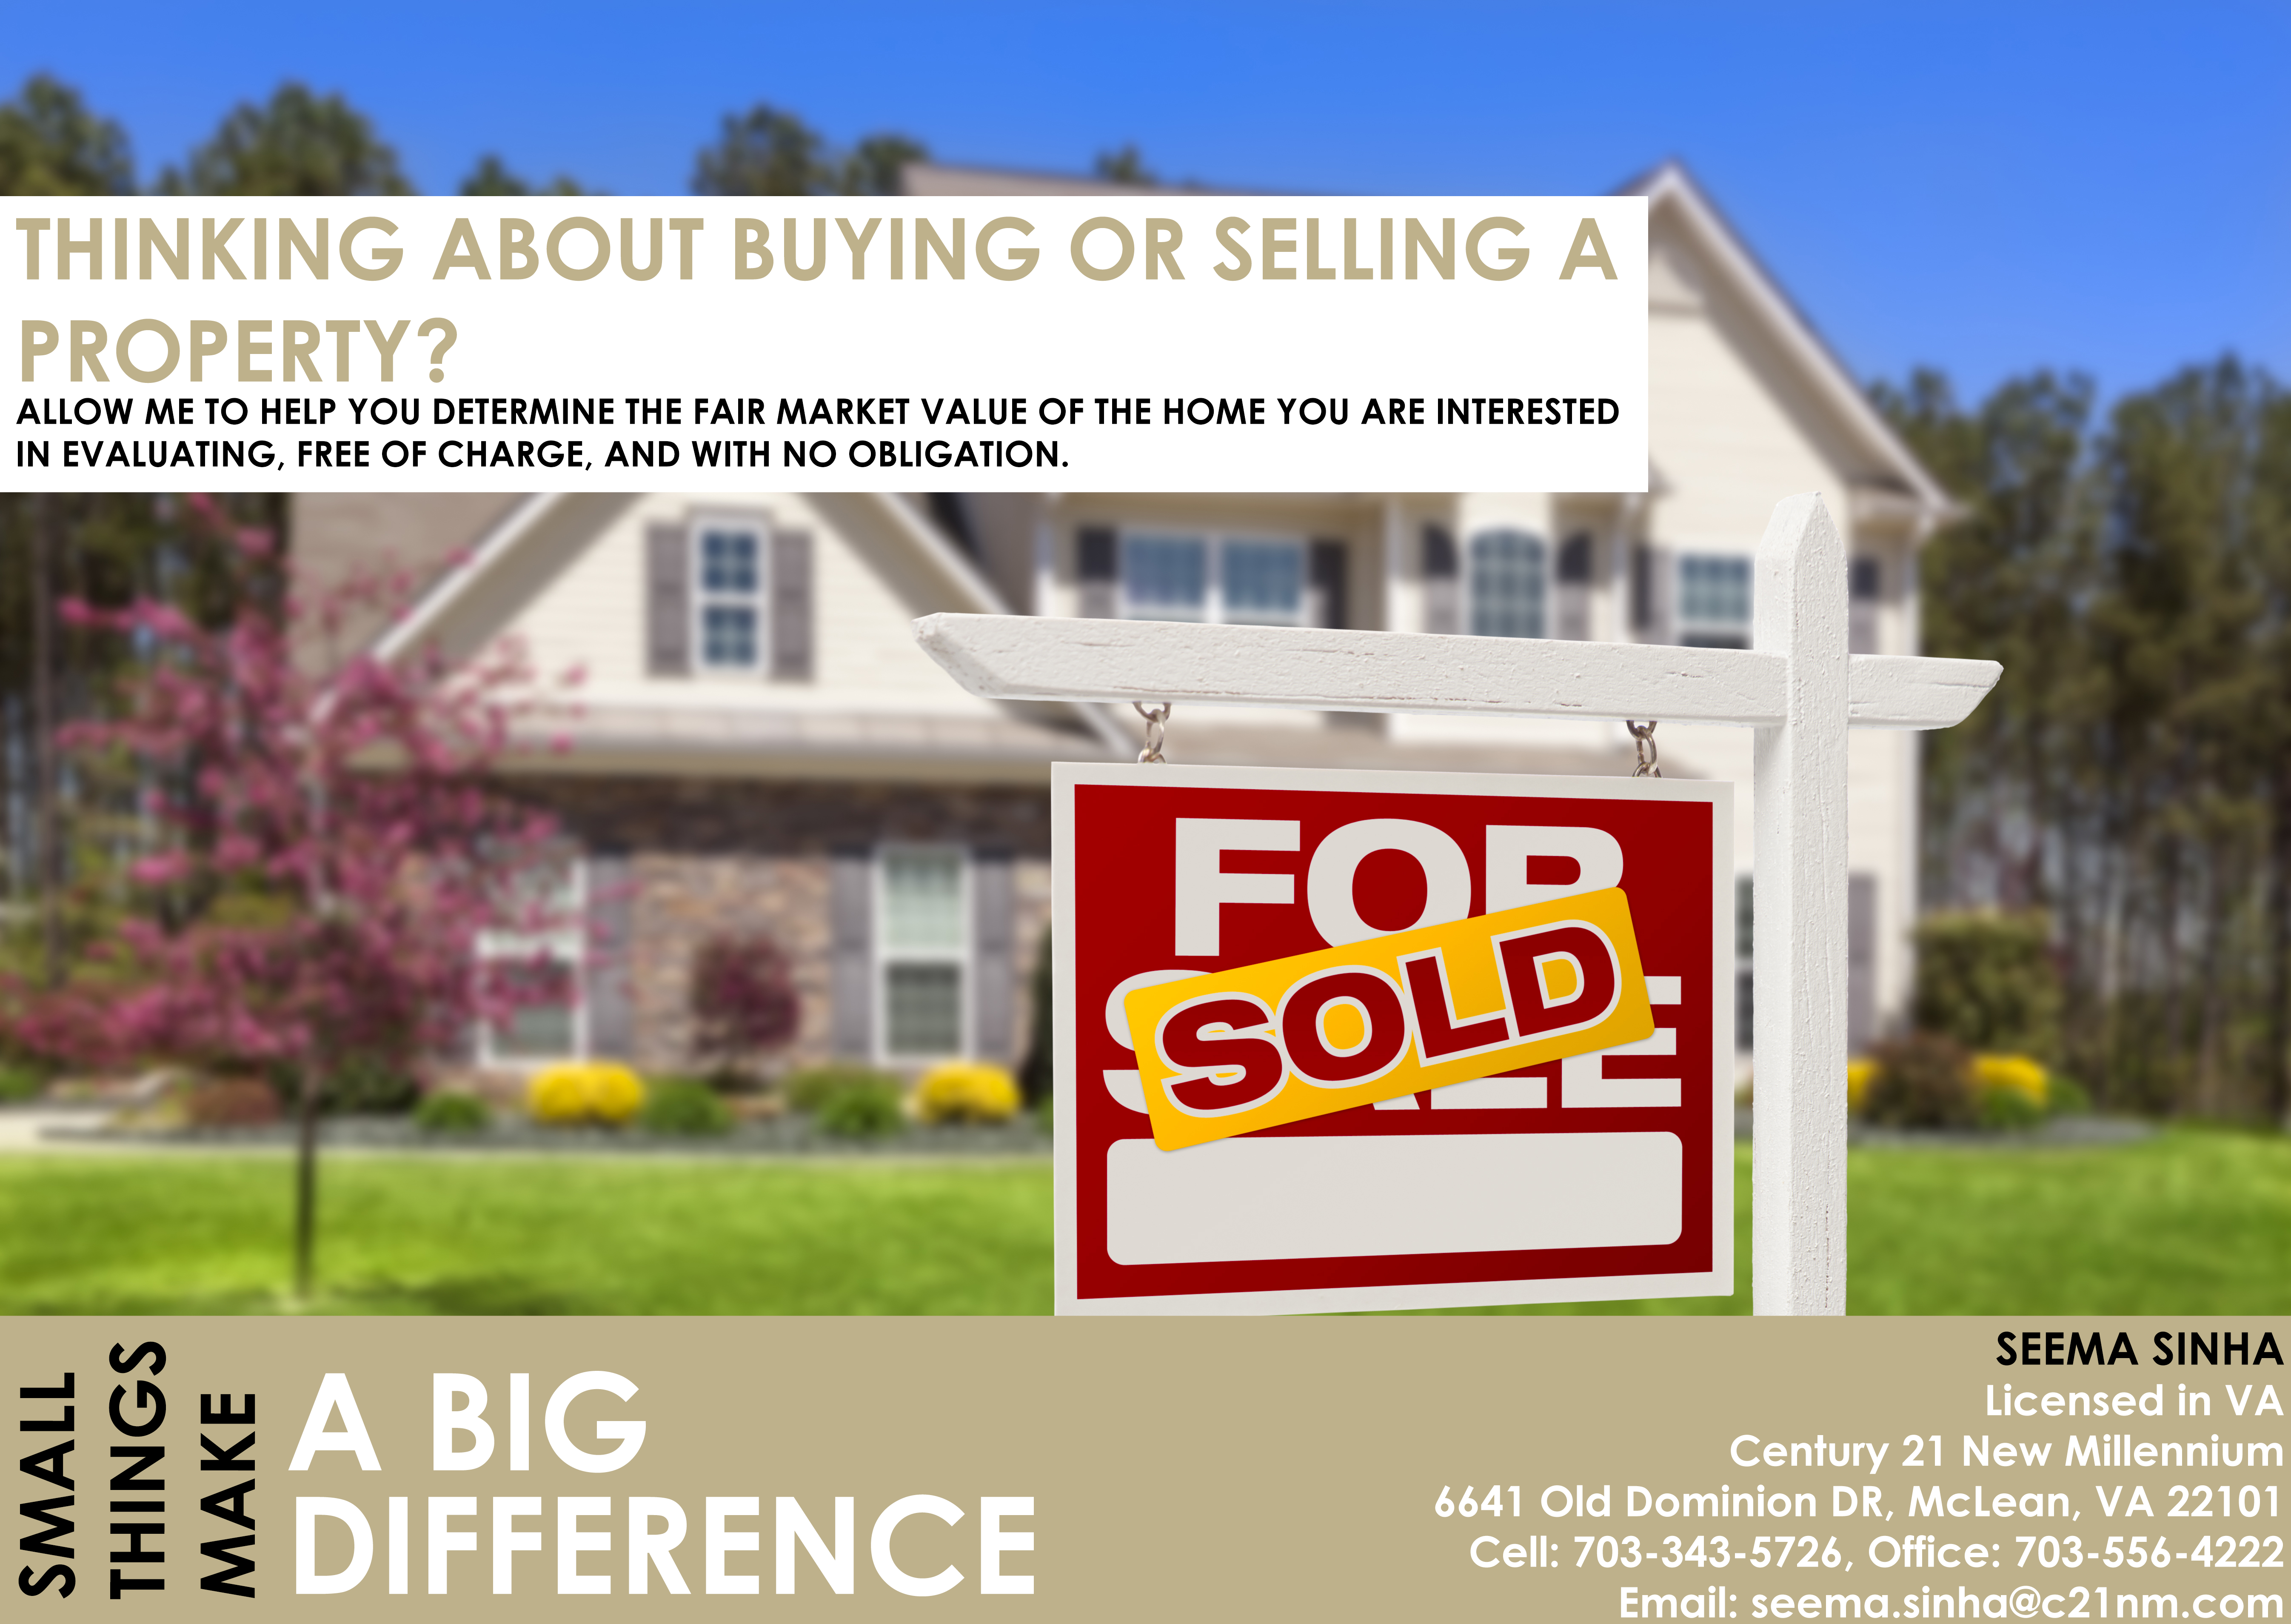 Thinking about buying or selling a property? Contact Us